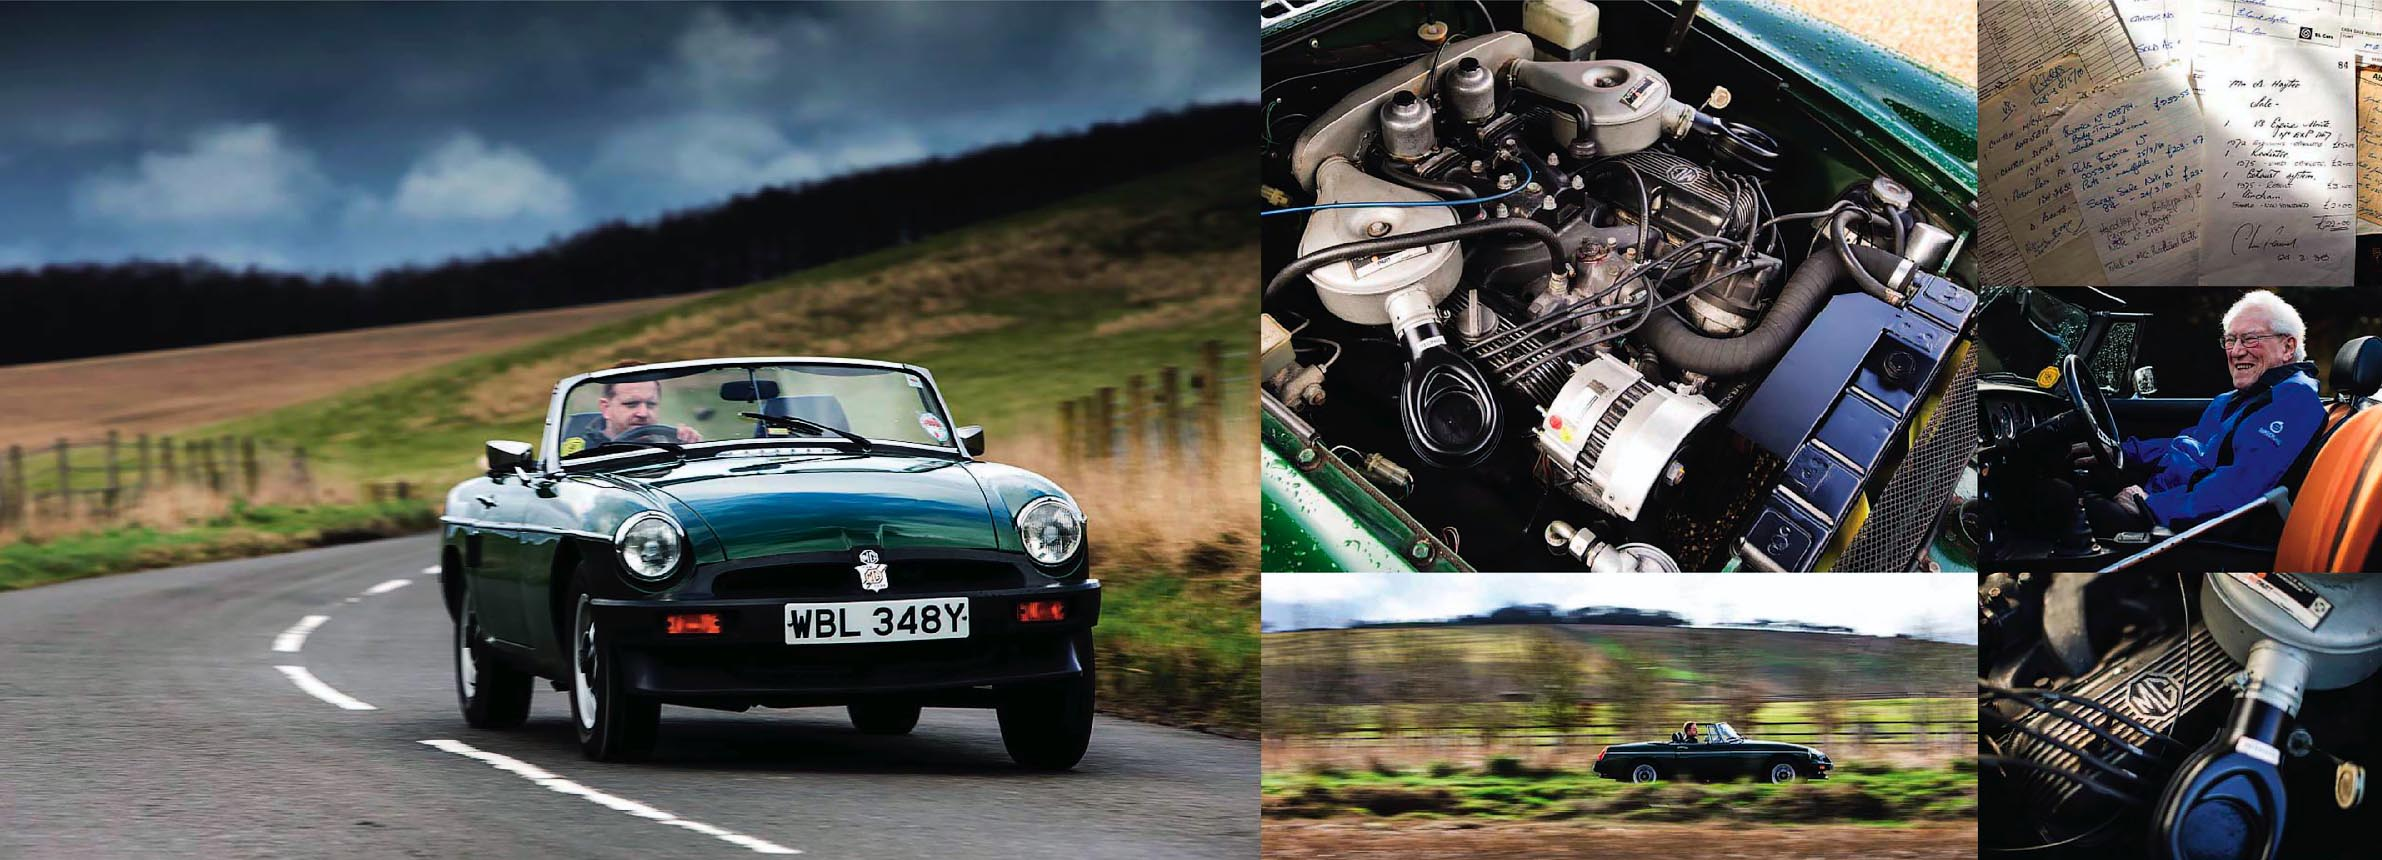 ; Hayter has fond memories of his B; first MG-badged rocker covers